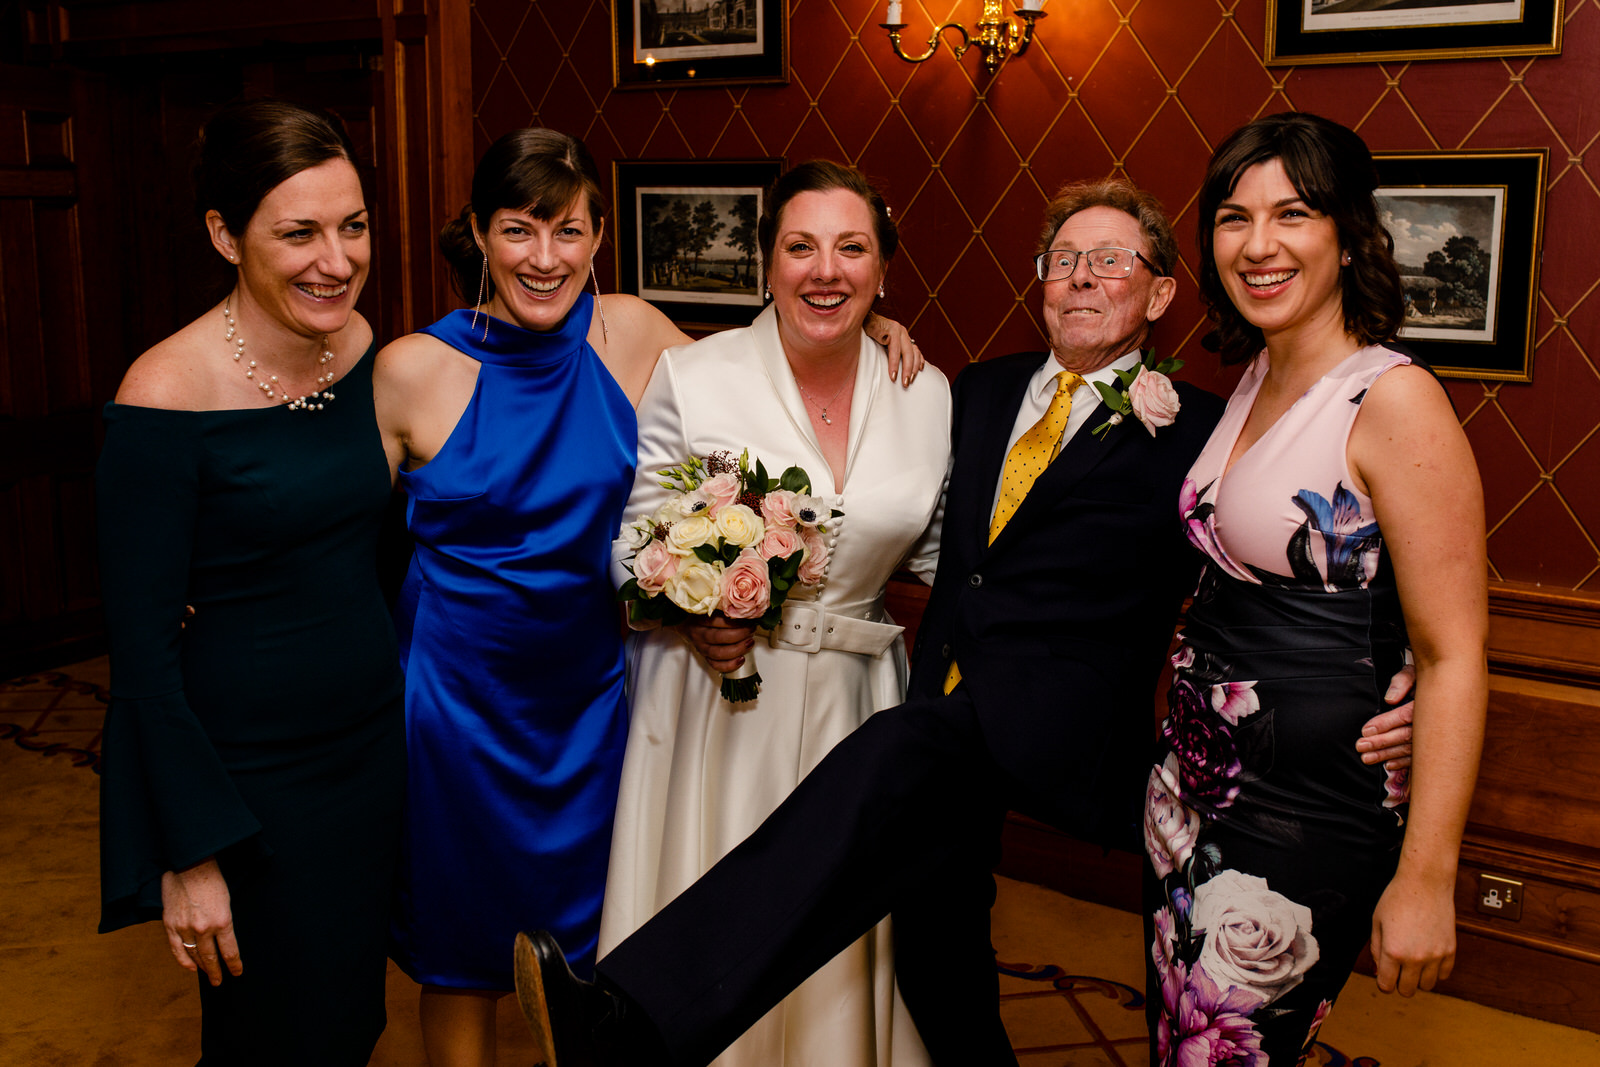 Roger-kenny-wedding-photographer-wicklow-glenview_064.jpg